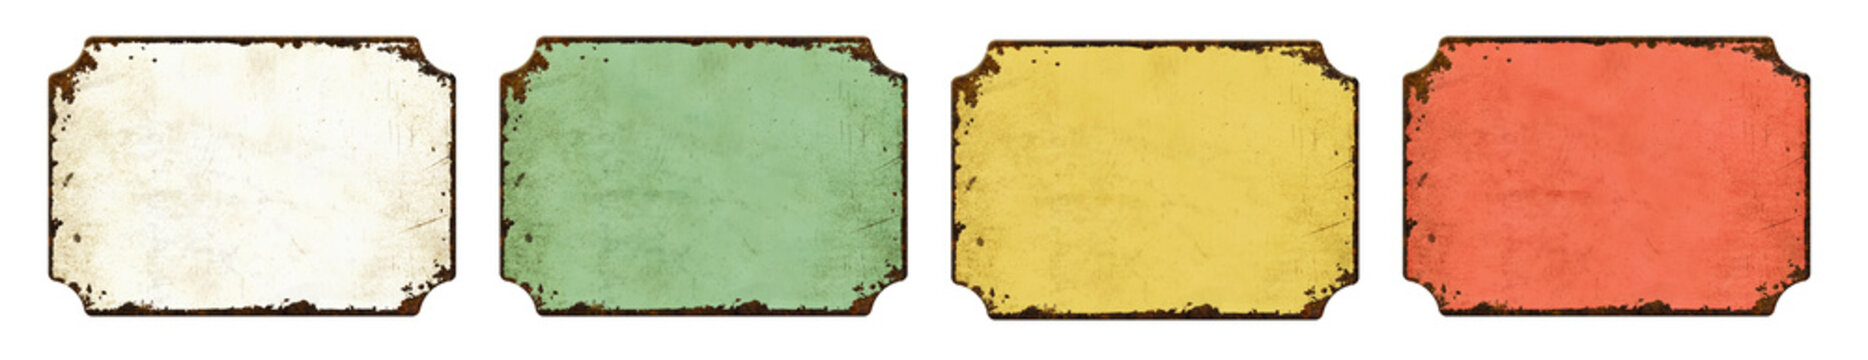 Four empty vintage tin signs on a white background